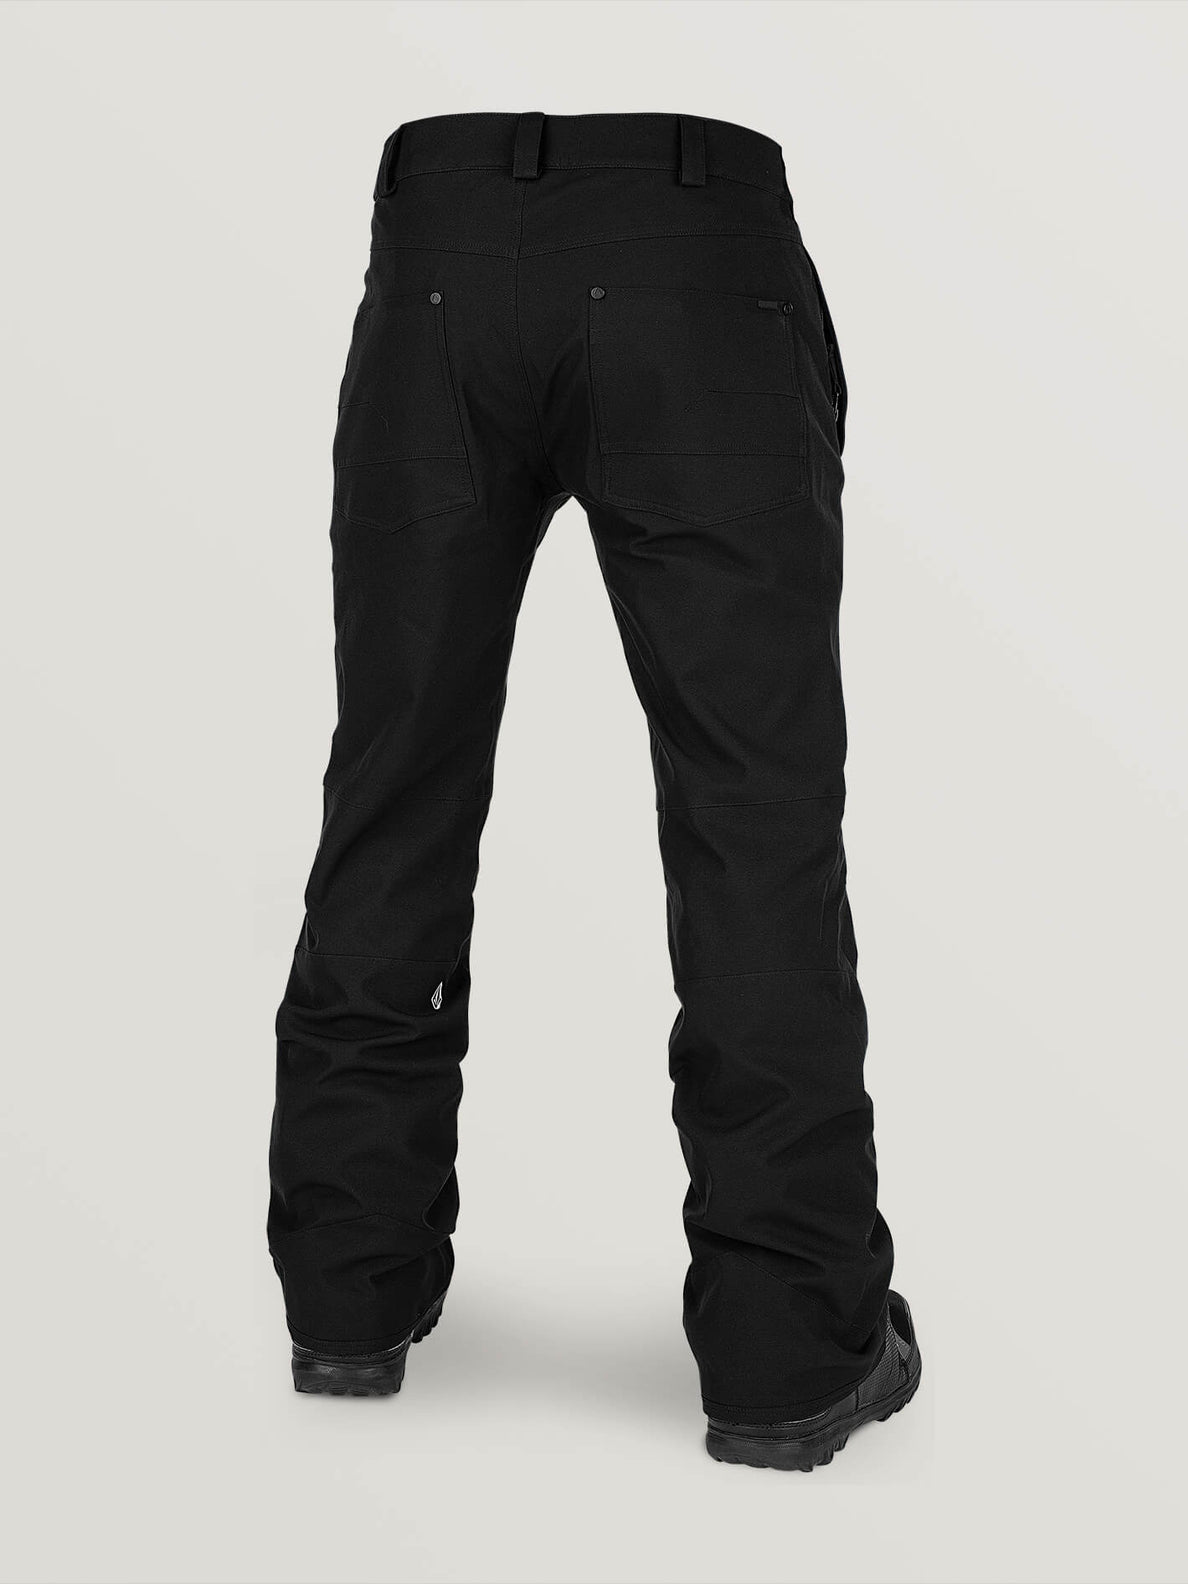 Klocker Tight Pant Black (G1352014_BLK) [B]